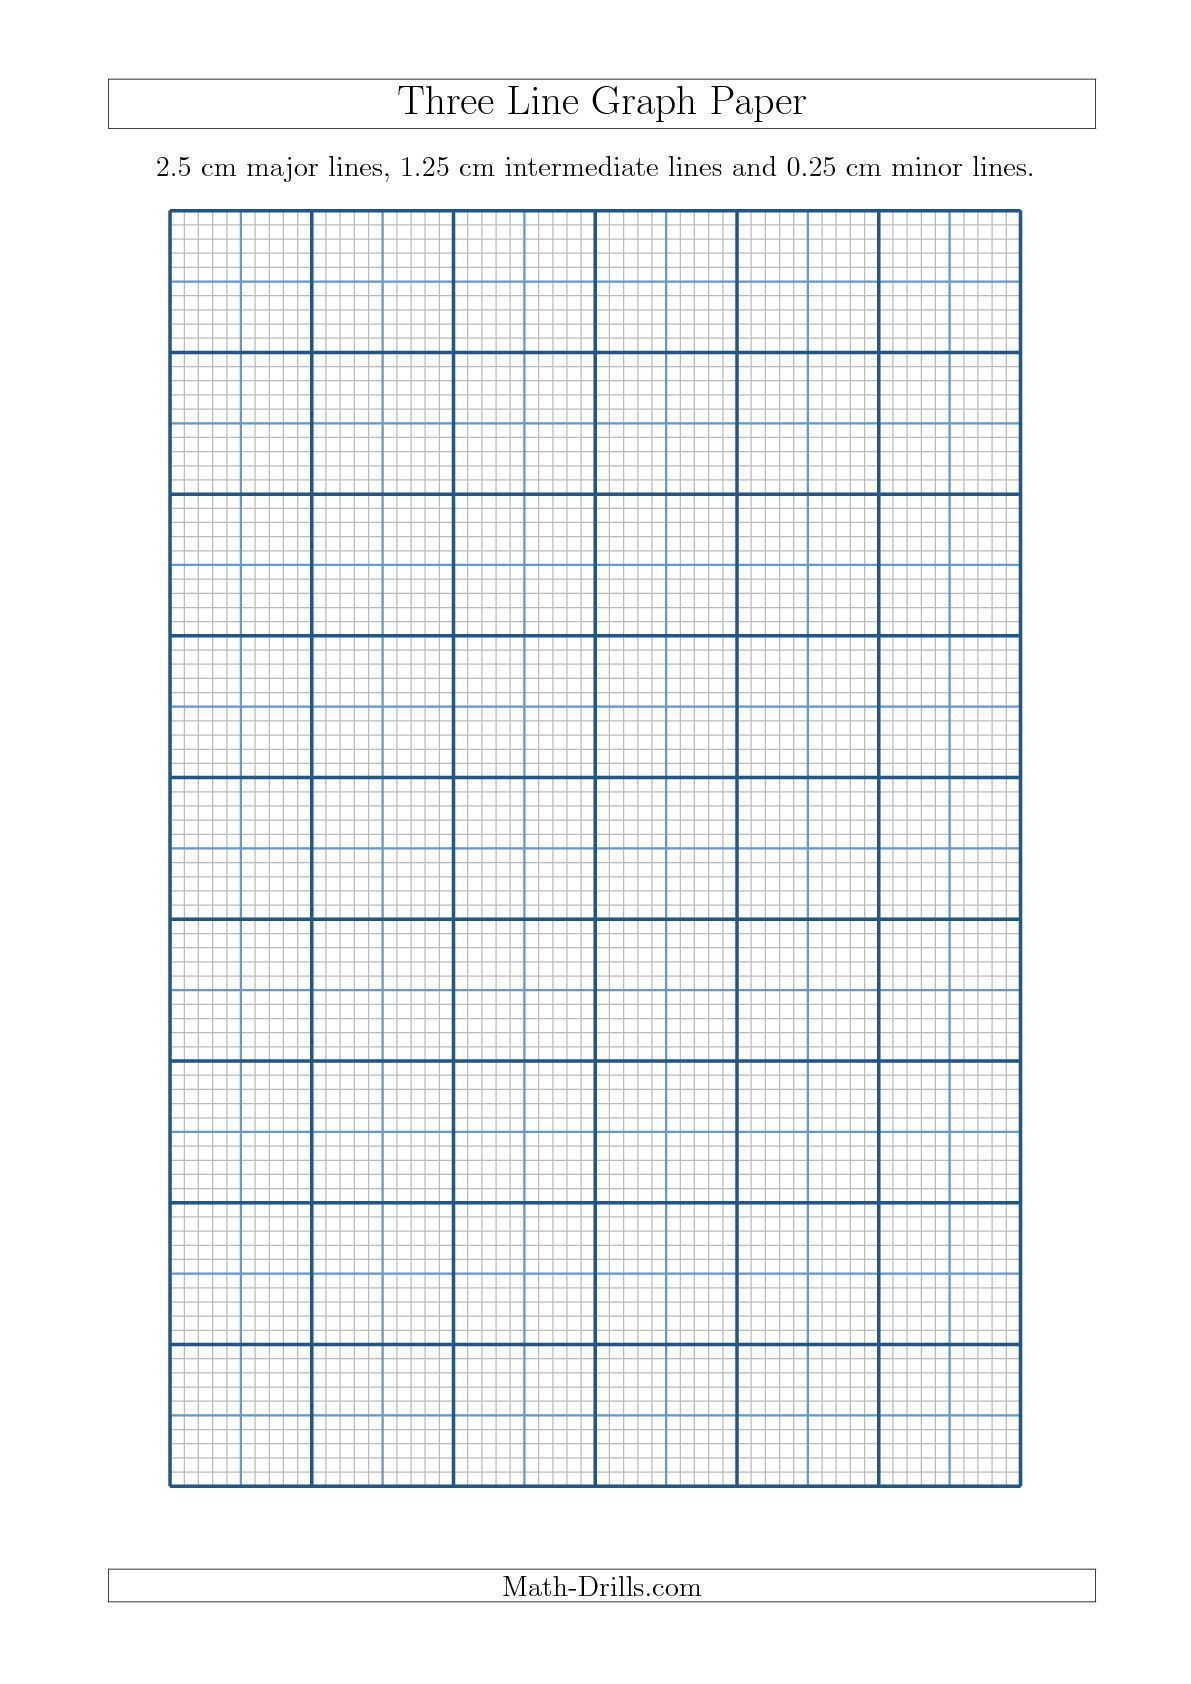 New A4 Sizes Added 09 18 Three Line Graph Paper With 2 5 Cm Major Lines 1 25 Cm